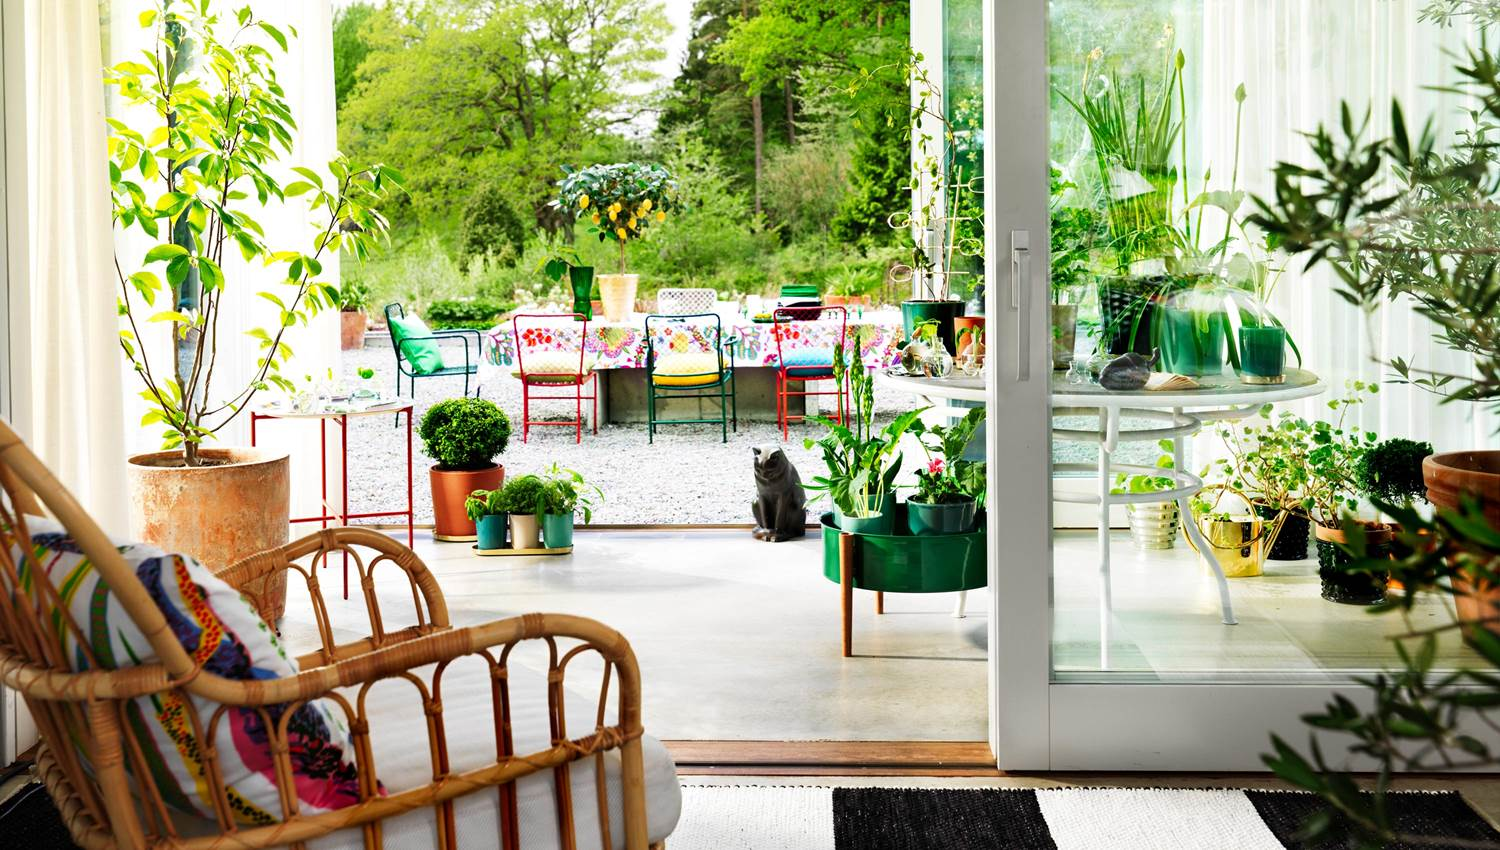 Decorate the outdoor room with Svenskt Tenn furniture & textile